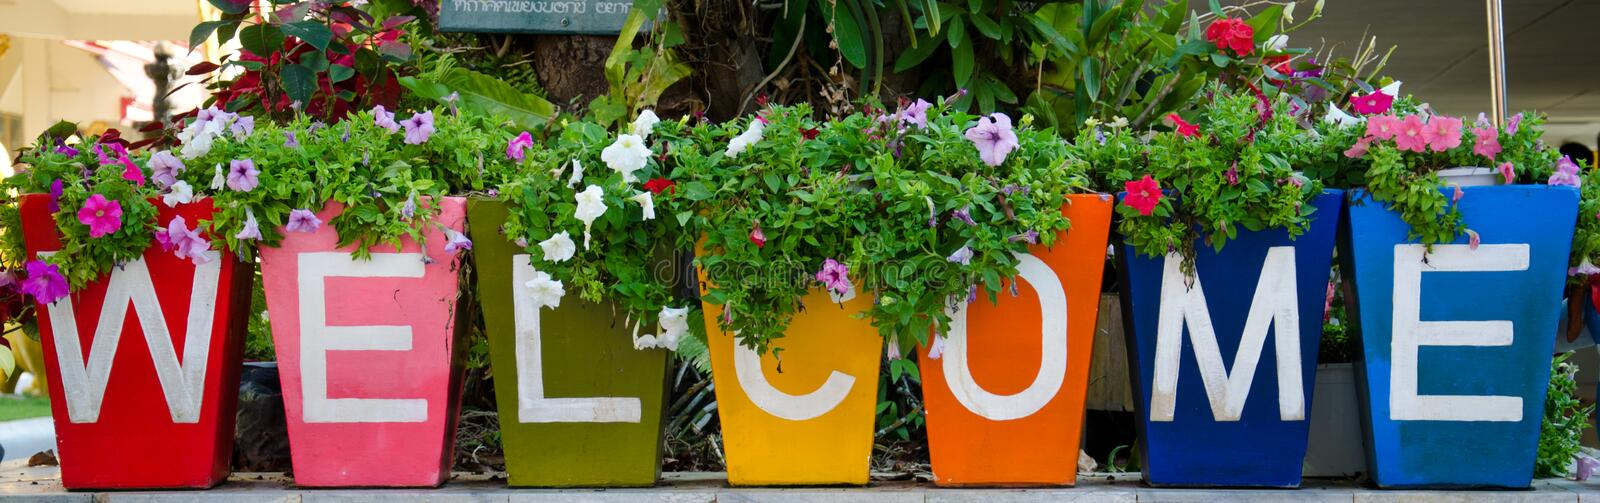 Welcome. Clay pots and planting flowers that welcome message stock photography